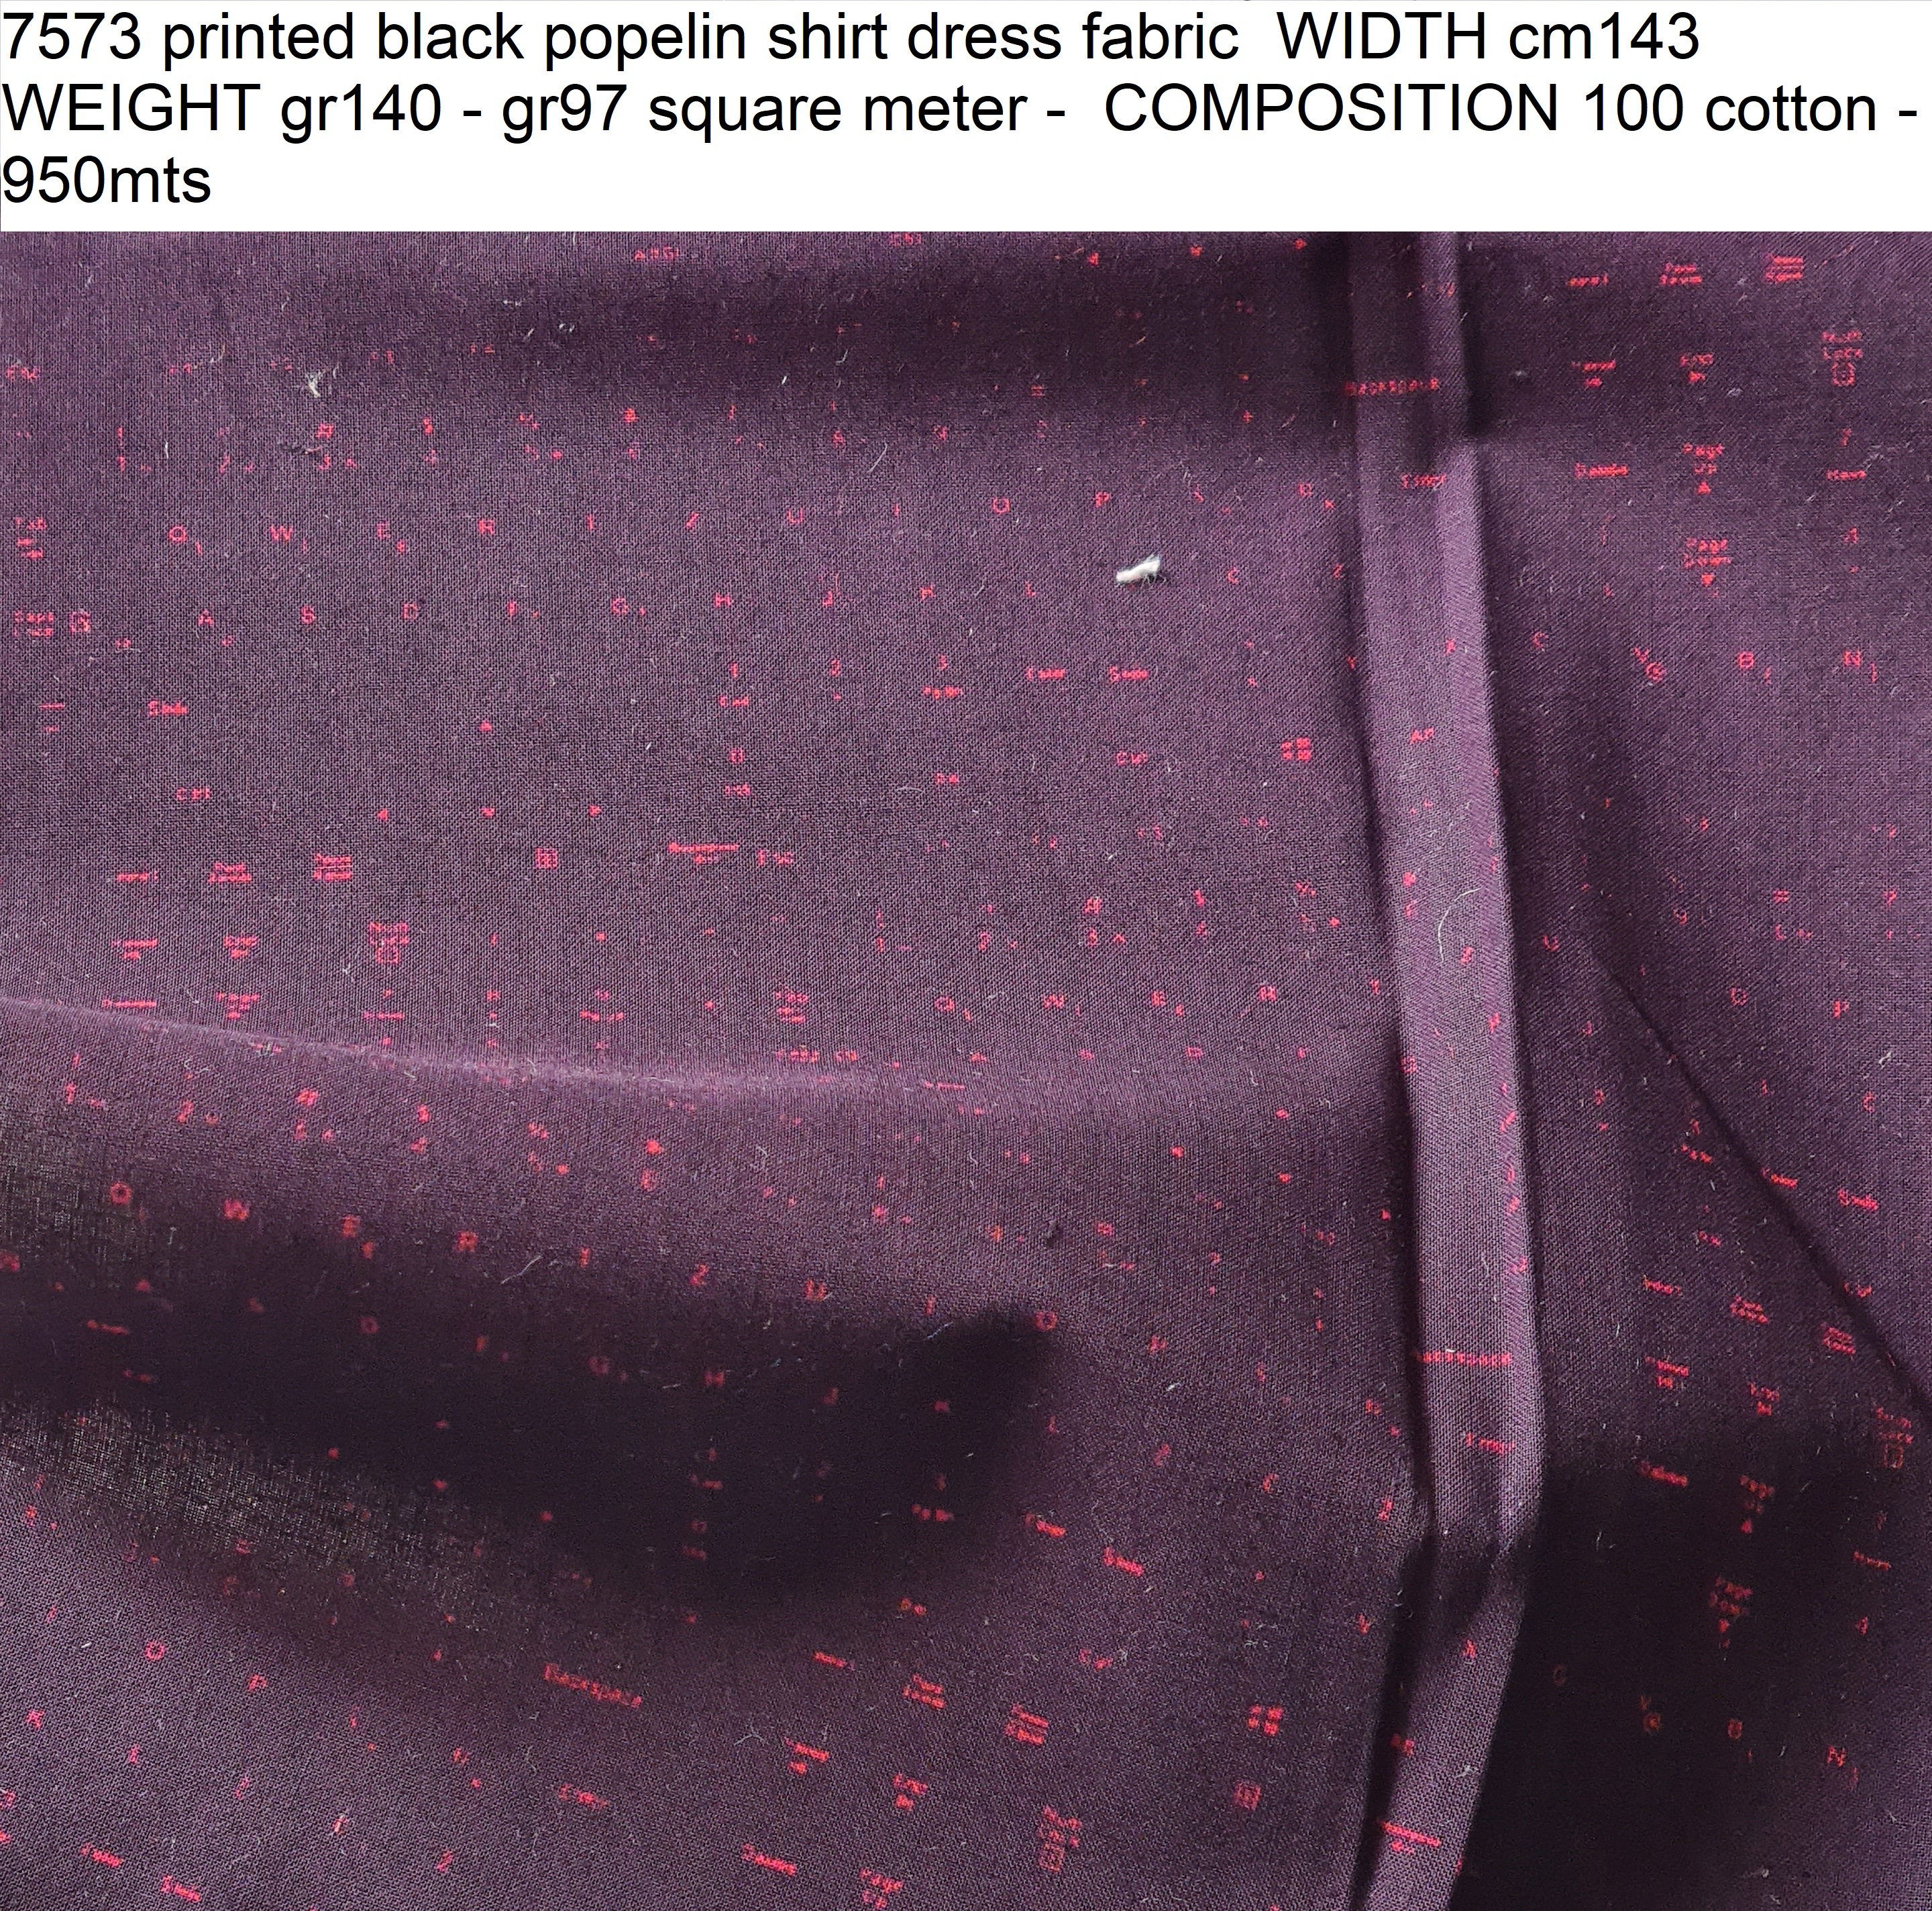 7573 printed black popelin shirt dress fabric WIDTH cm143 WEIGHT gr140 - gr97 square meter - COMPOSITION 100 cotton - 950mts